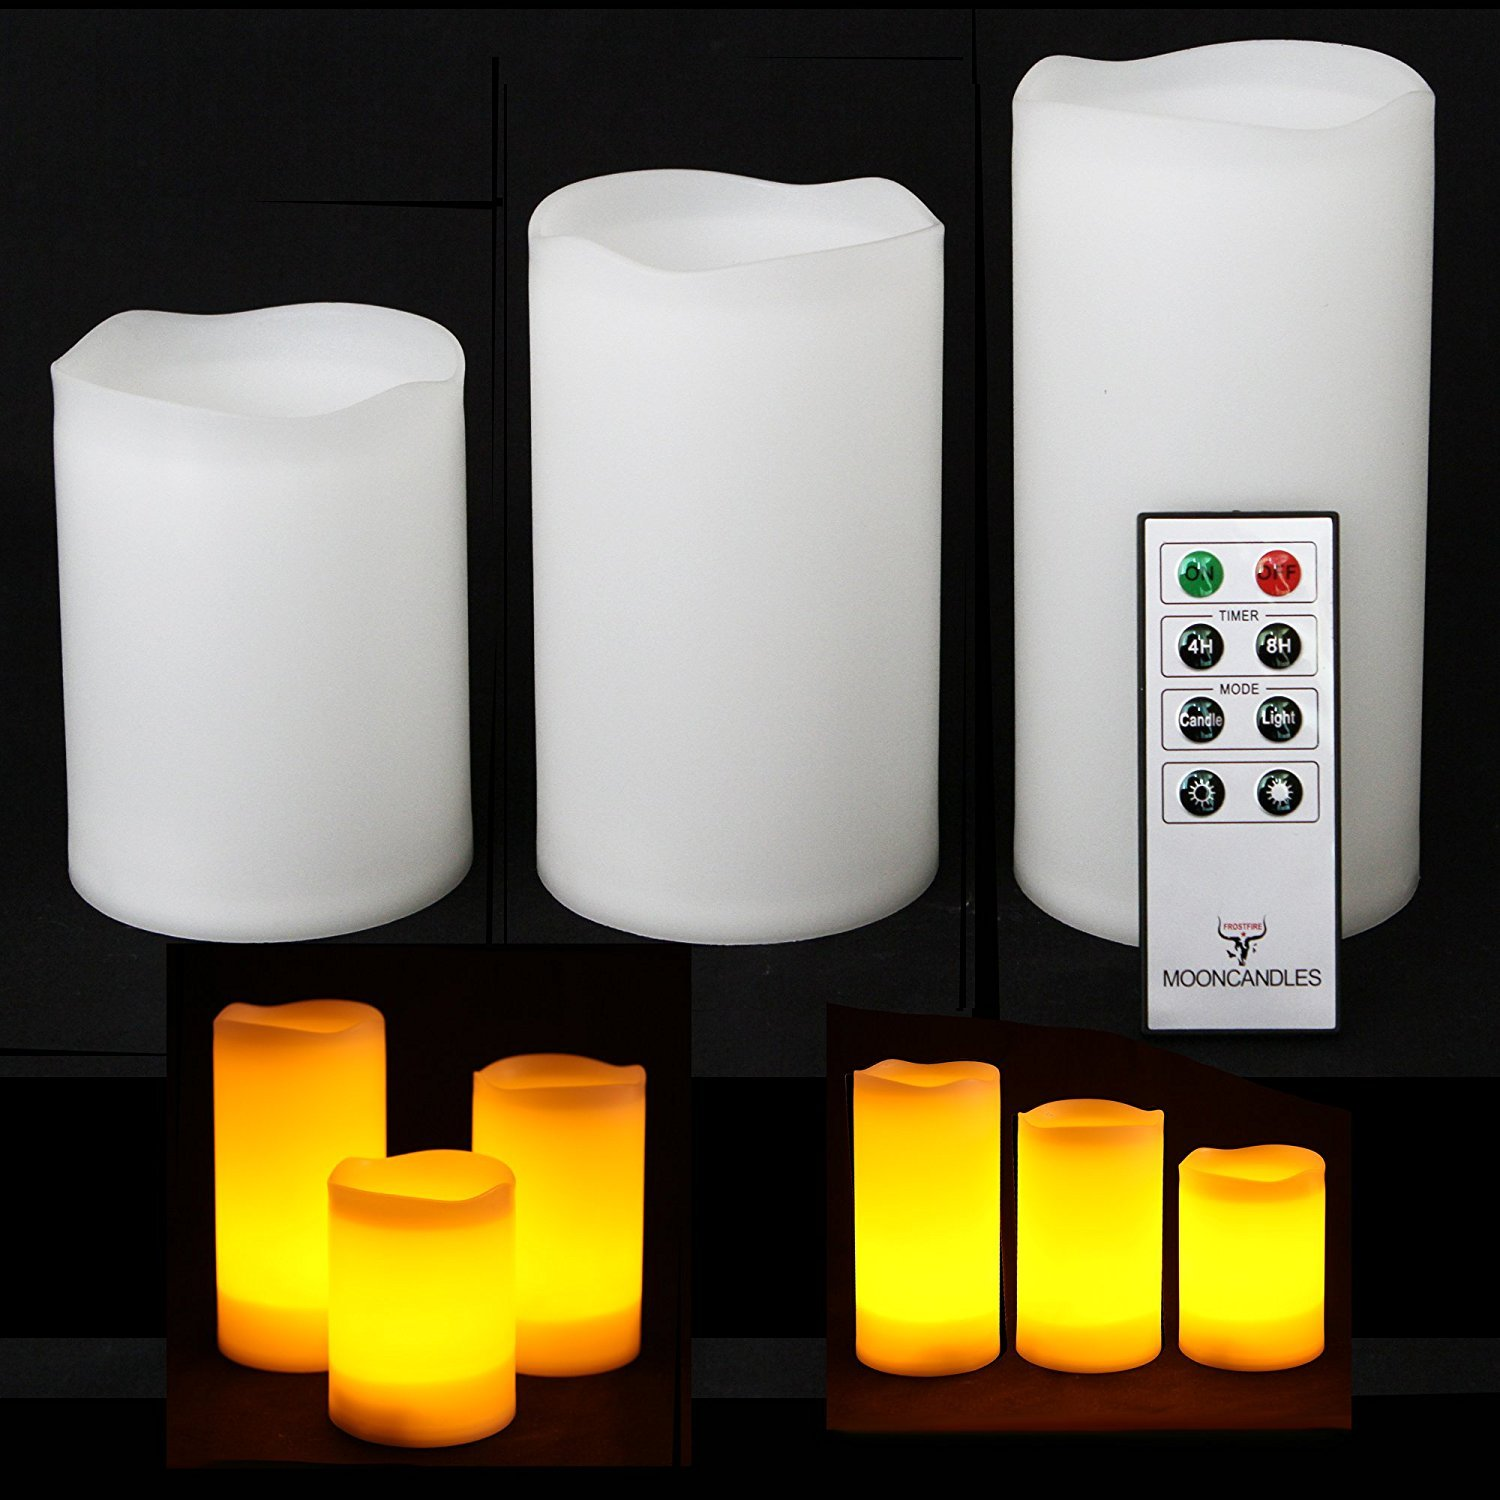 Frostfire Mooncandles - 3 Weatherproof Outdoor and Indoor Candles with Remote Control & Timer Mooncandles - 6018